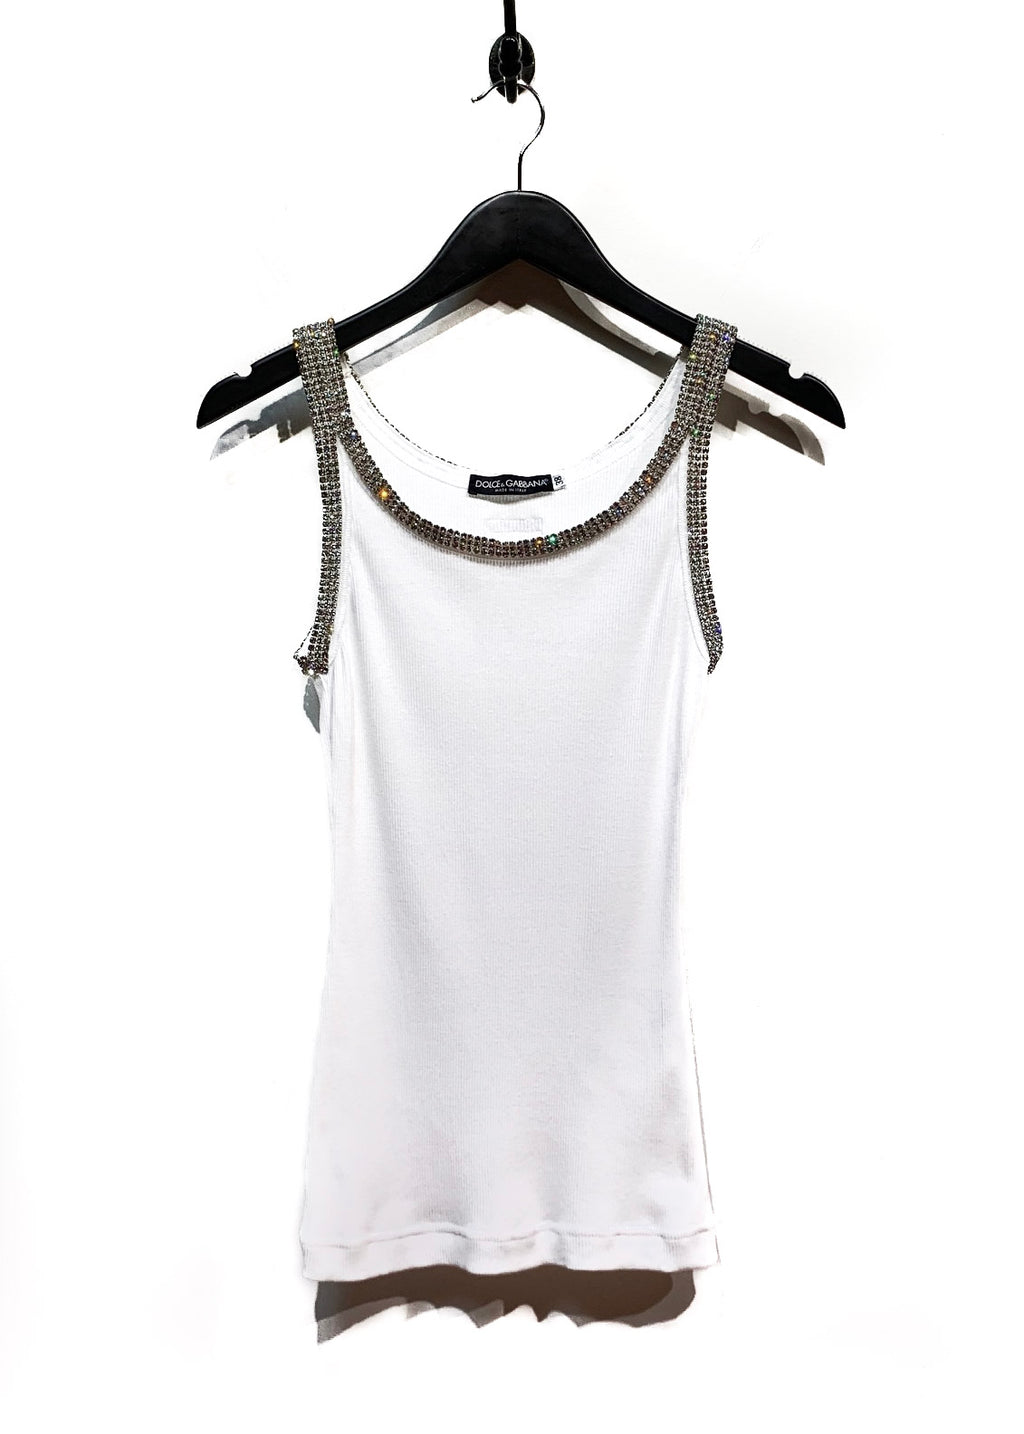 Dolce & Gabbana Crystal Embellished White Ribbed Tank Top